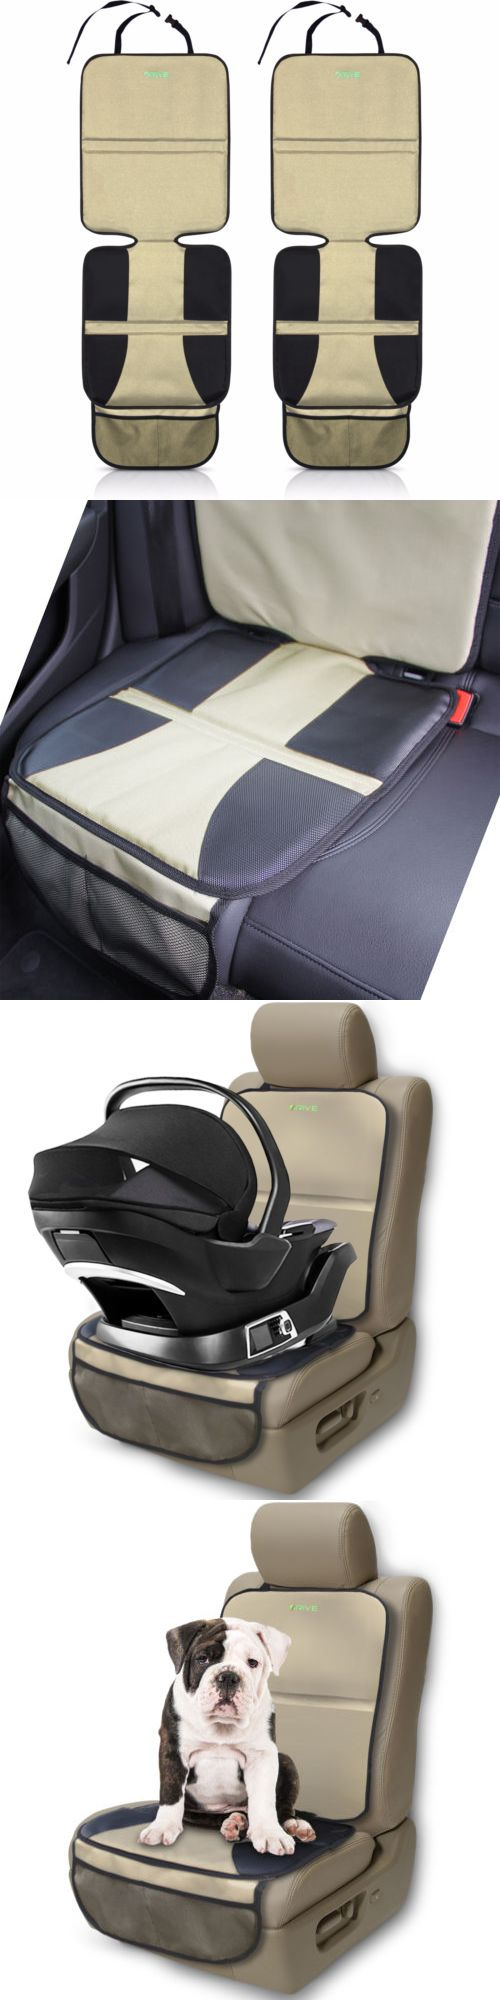 Car Seat Accessories 66693: Car Seat Protector (2-Pack, Tan) By Drive Auto Products - Best Child Seat Pad -> BUY IT NOW ONLY: $37.61 on eBay!